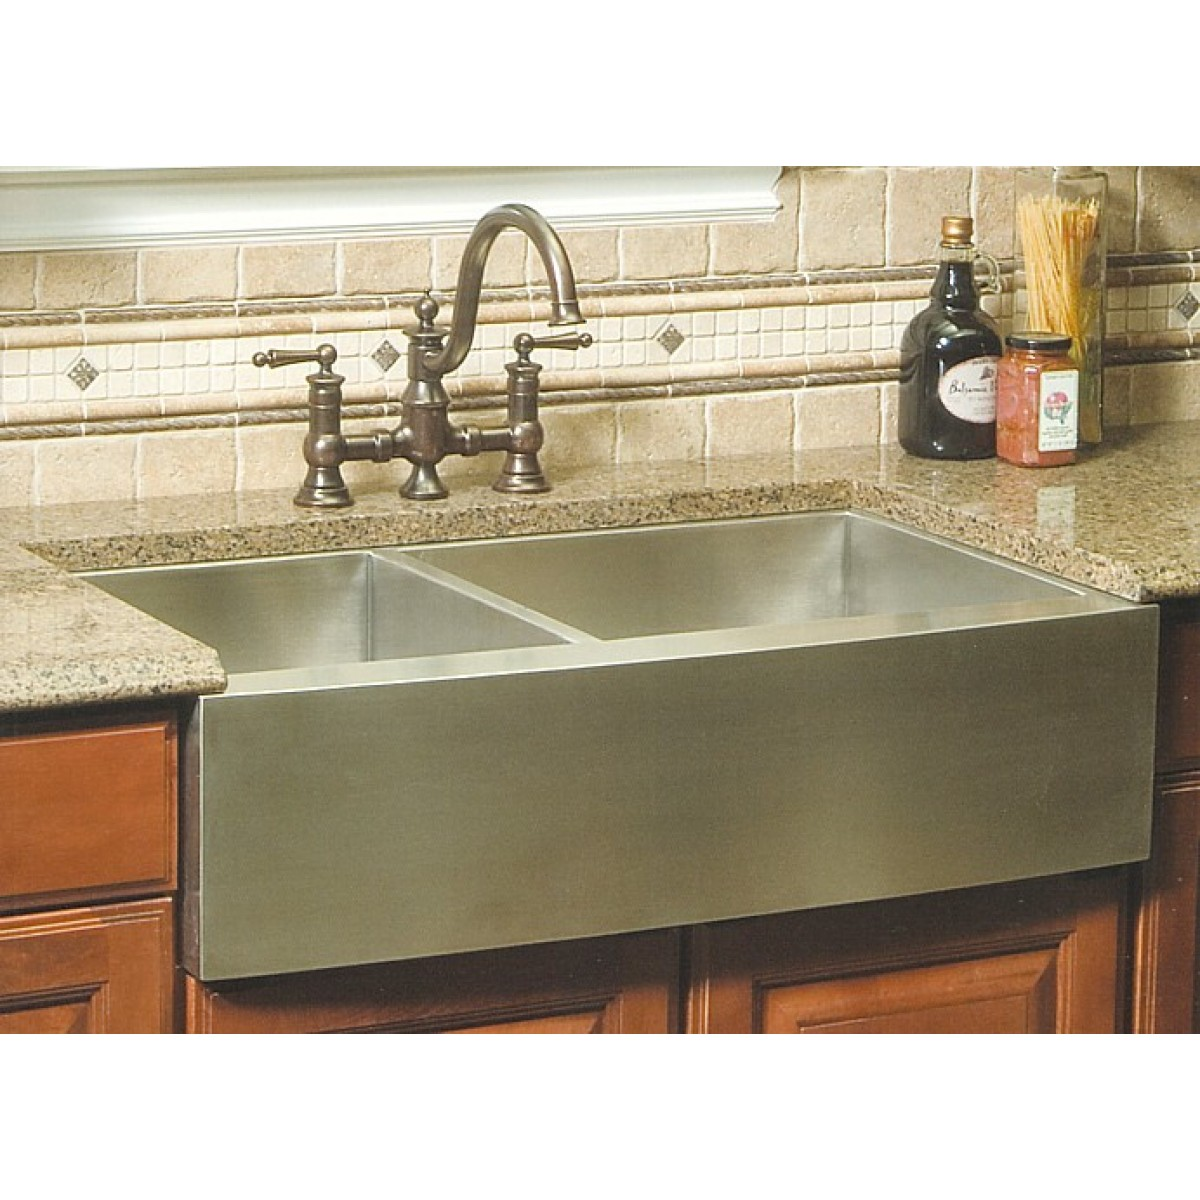 60 40 kitchen sink coffee decoration for 36 inch stainless steel curved front farm apron double bowl